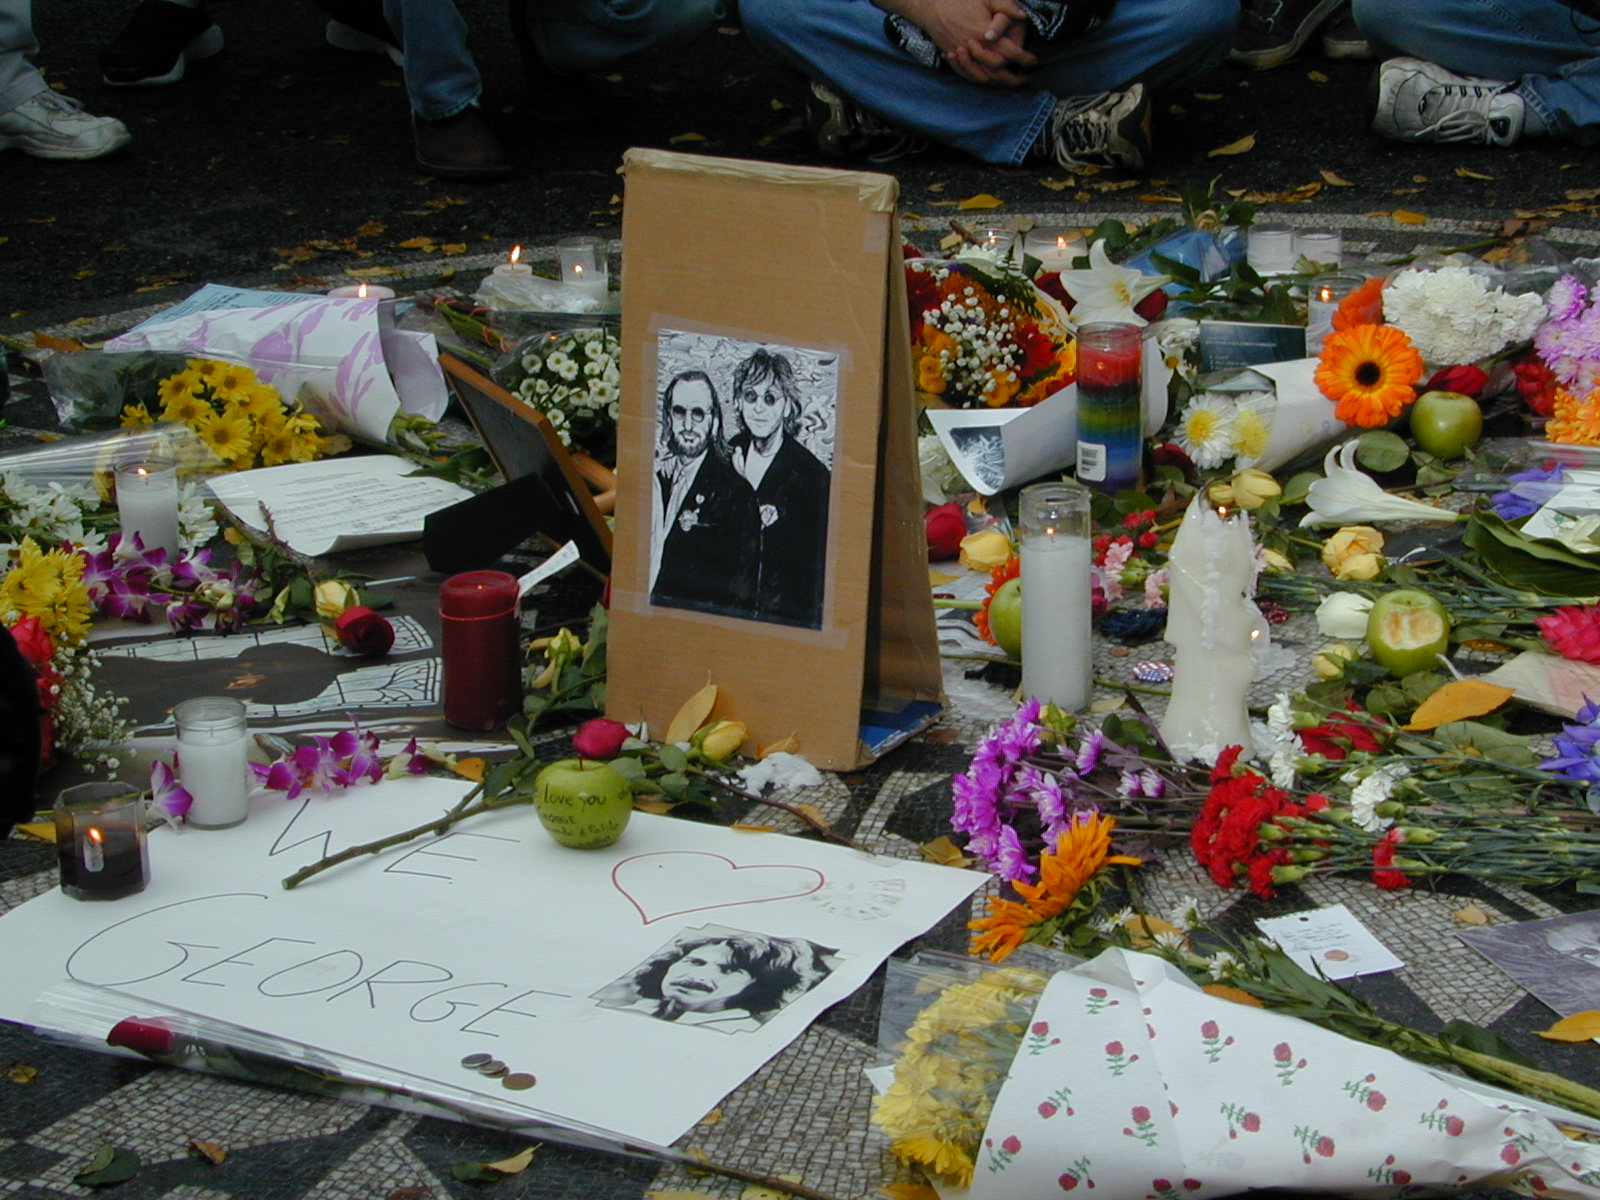 George Harrison Memorial. Photo by RD Mathers